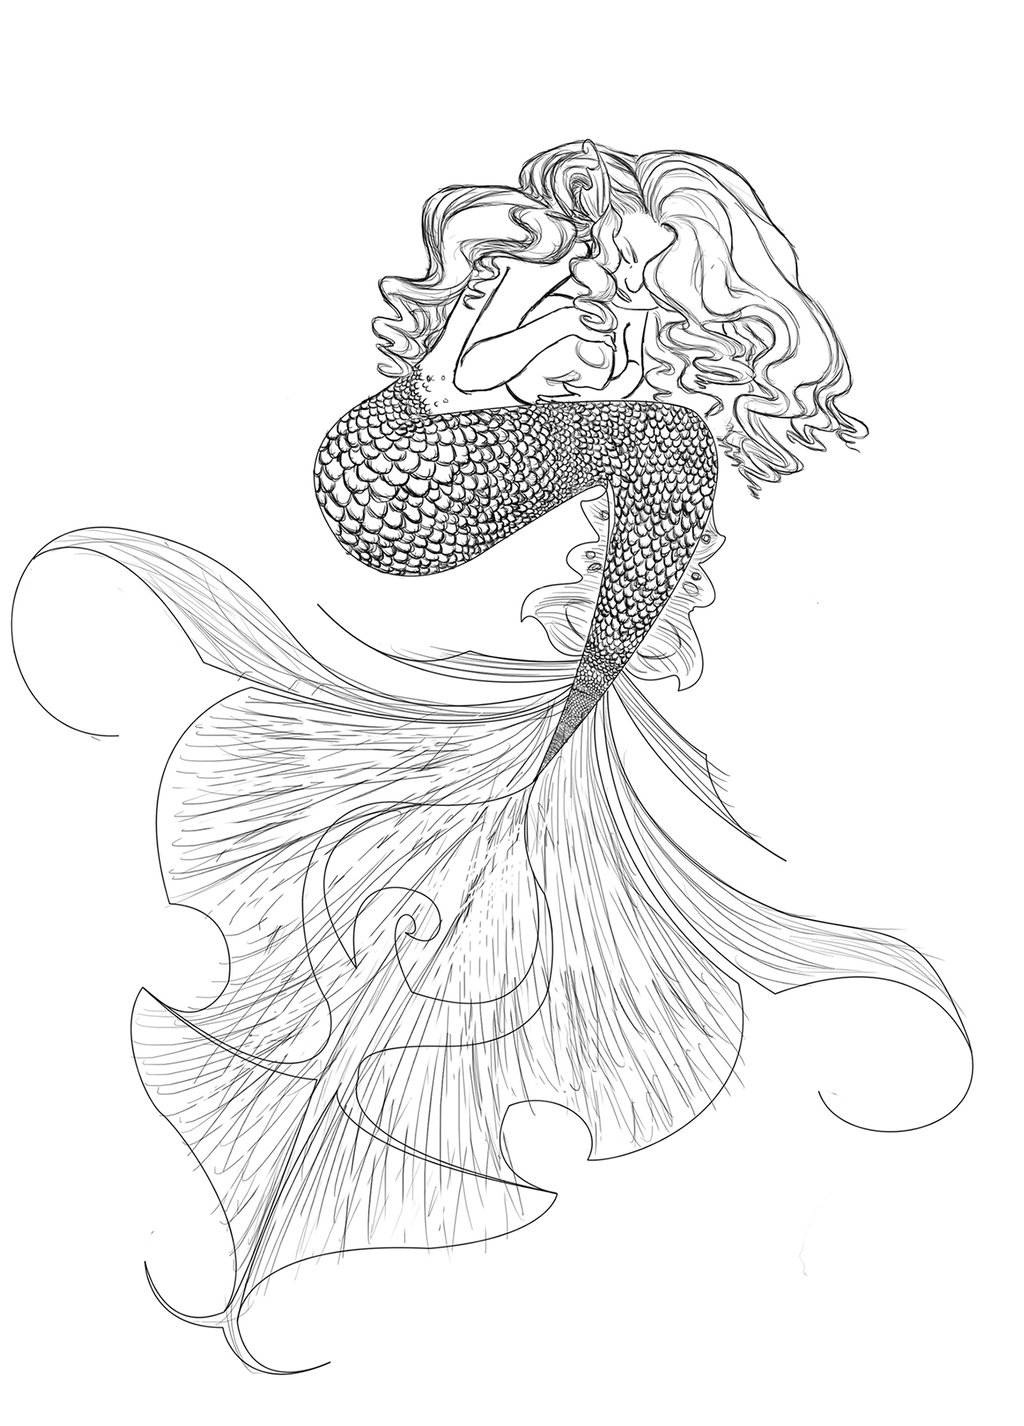 Realistic Mermaid Drawing At Getdrawings Com Free For Personal Use